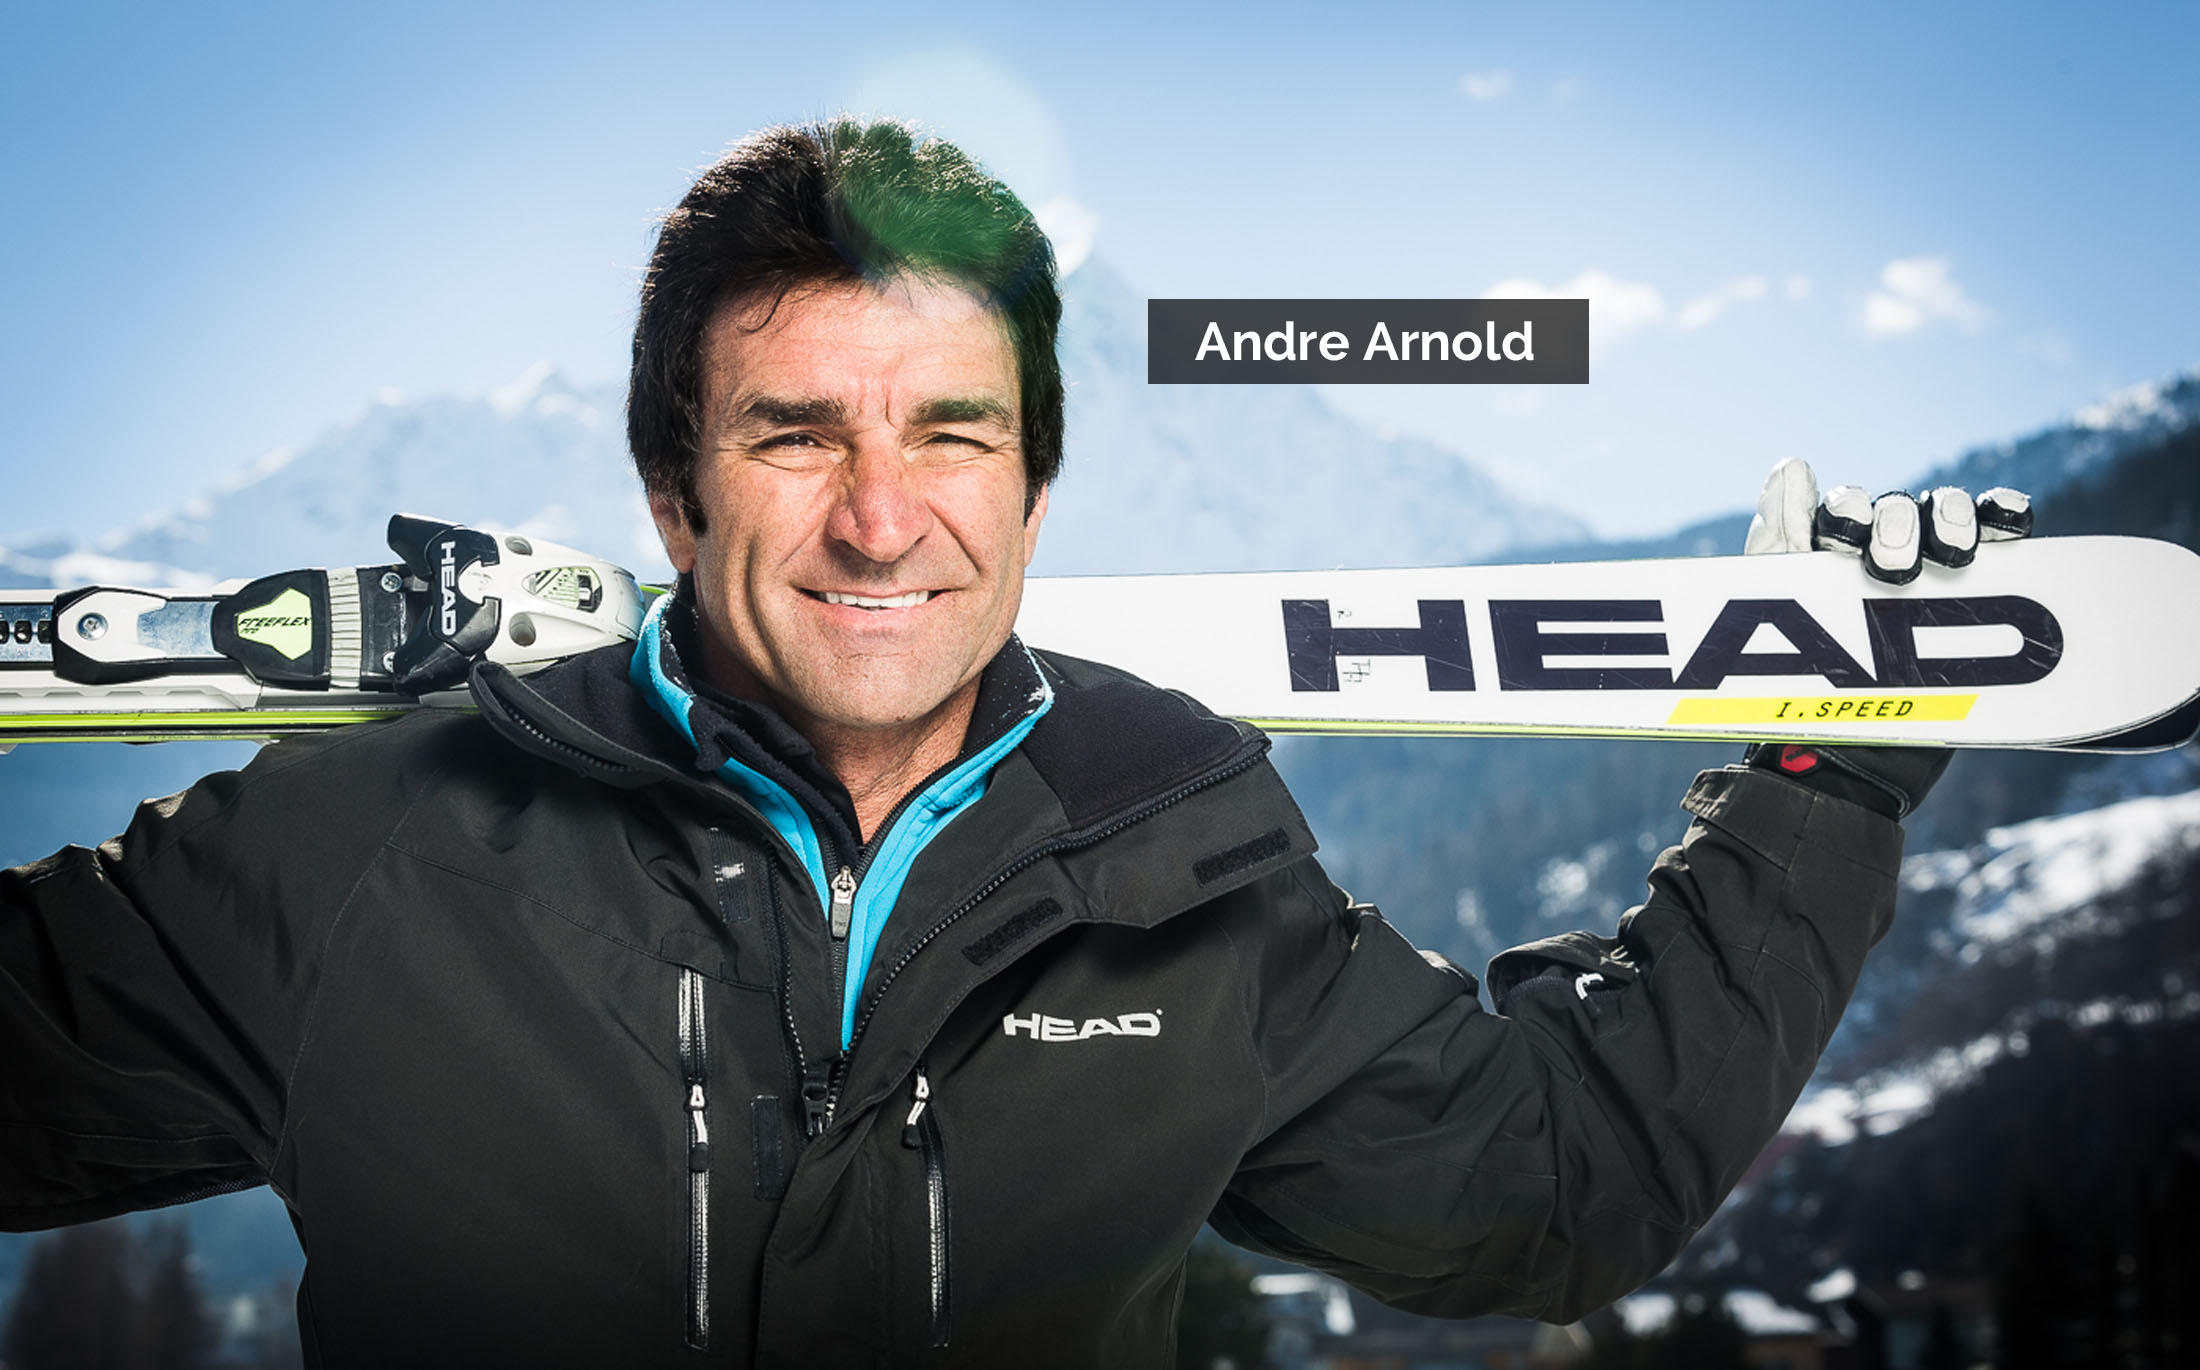 Andre Arnold